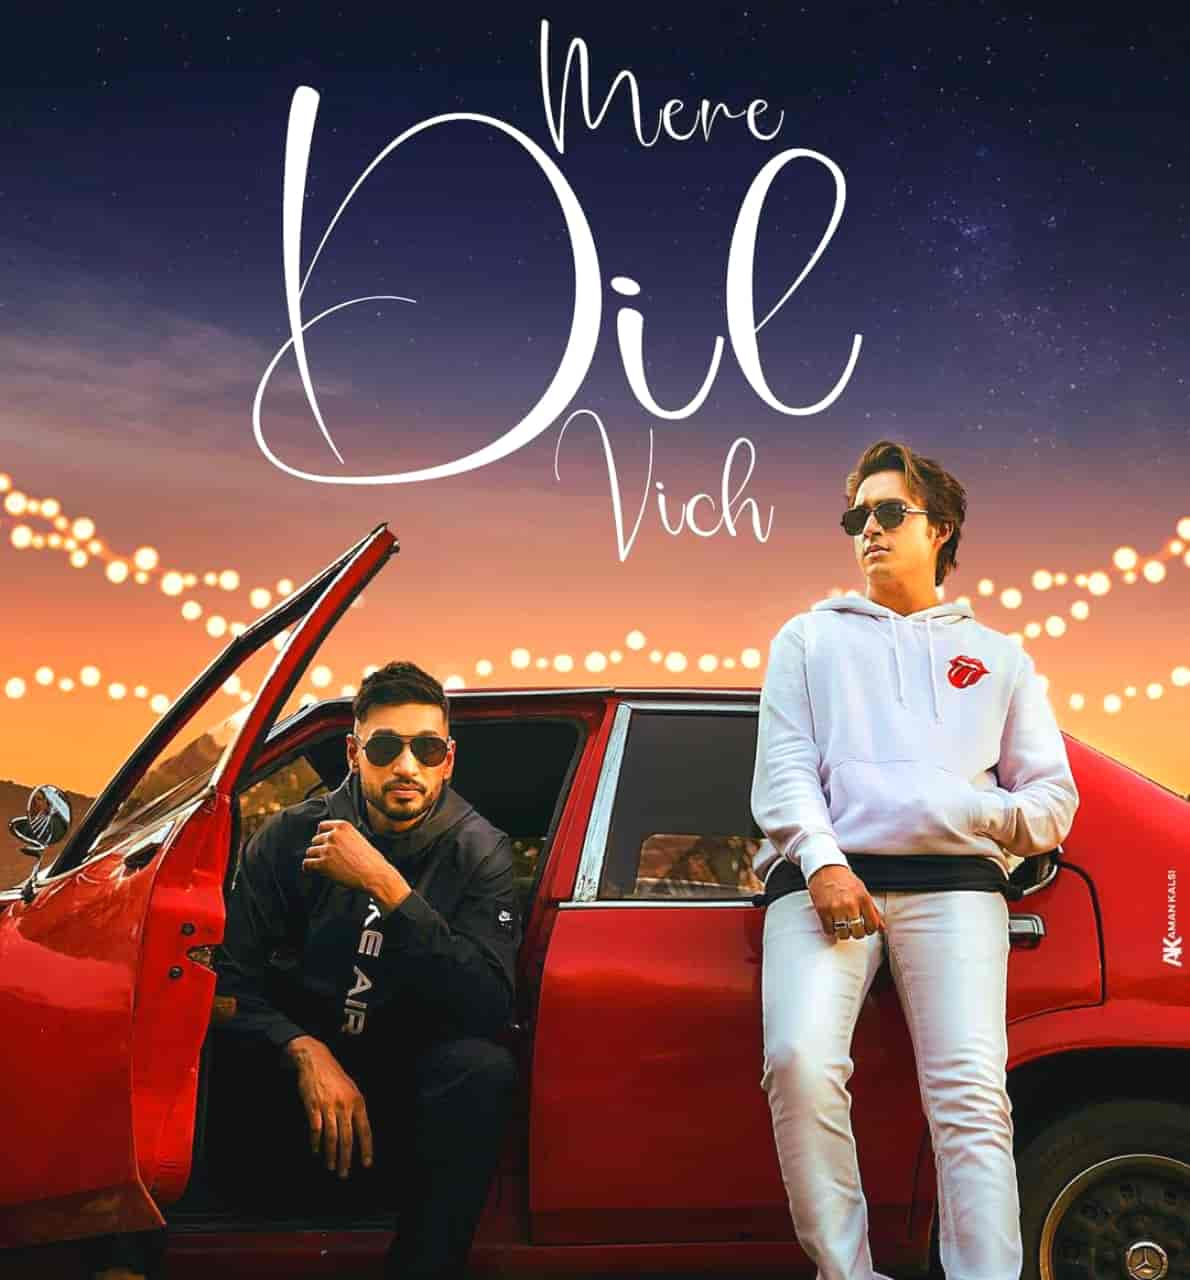 Mere Dil Vich Song Lyrics Image Arjun Kanungo